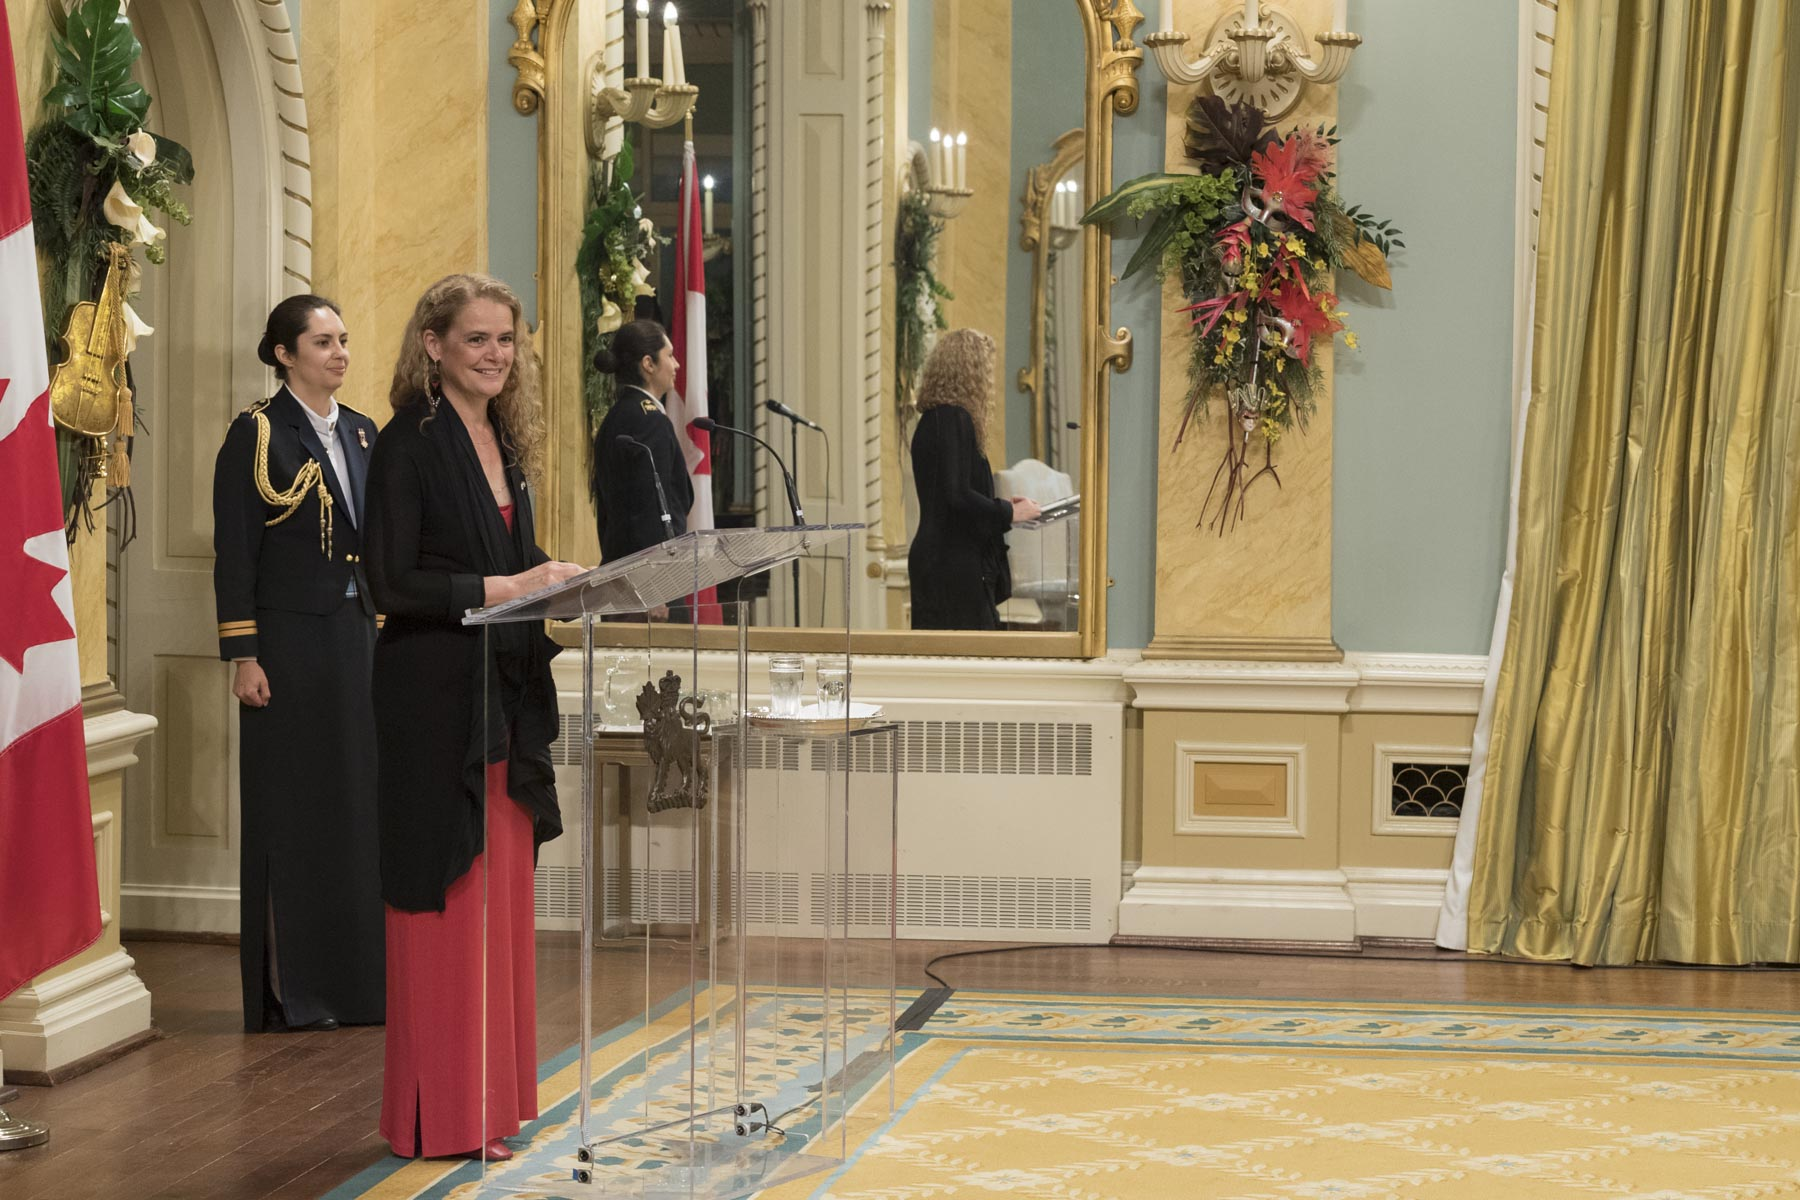 In her remarks during the presentation ceremony at Rideau Hall, the Governor General congratulated each recipient by highlighting their individual accomplishment.